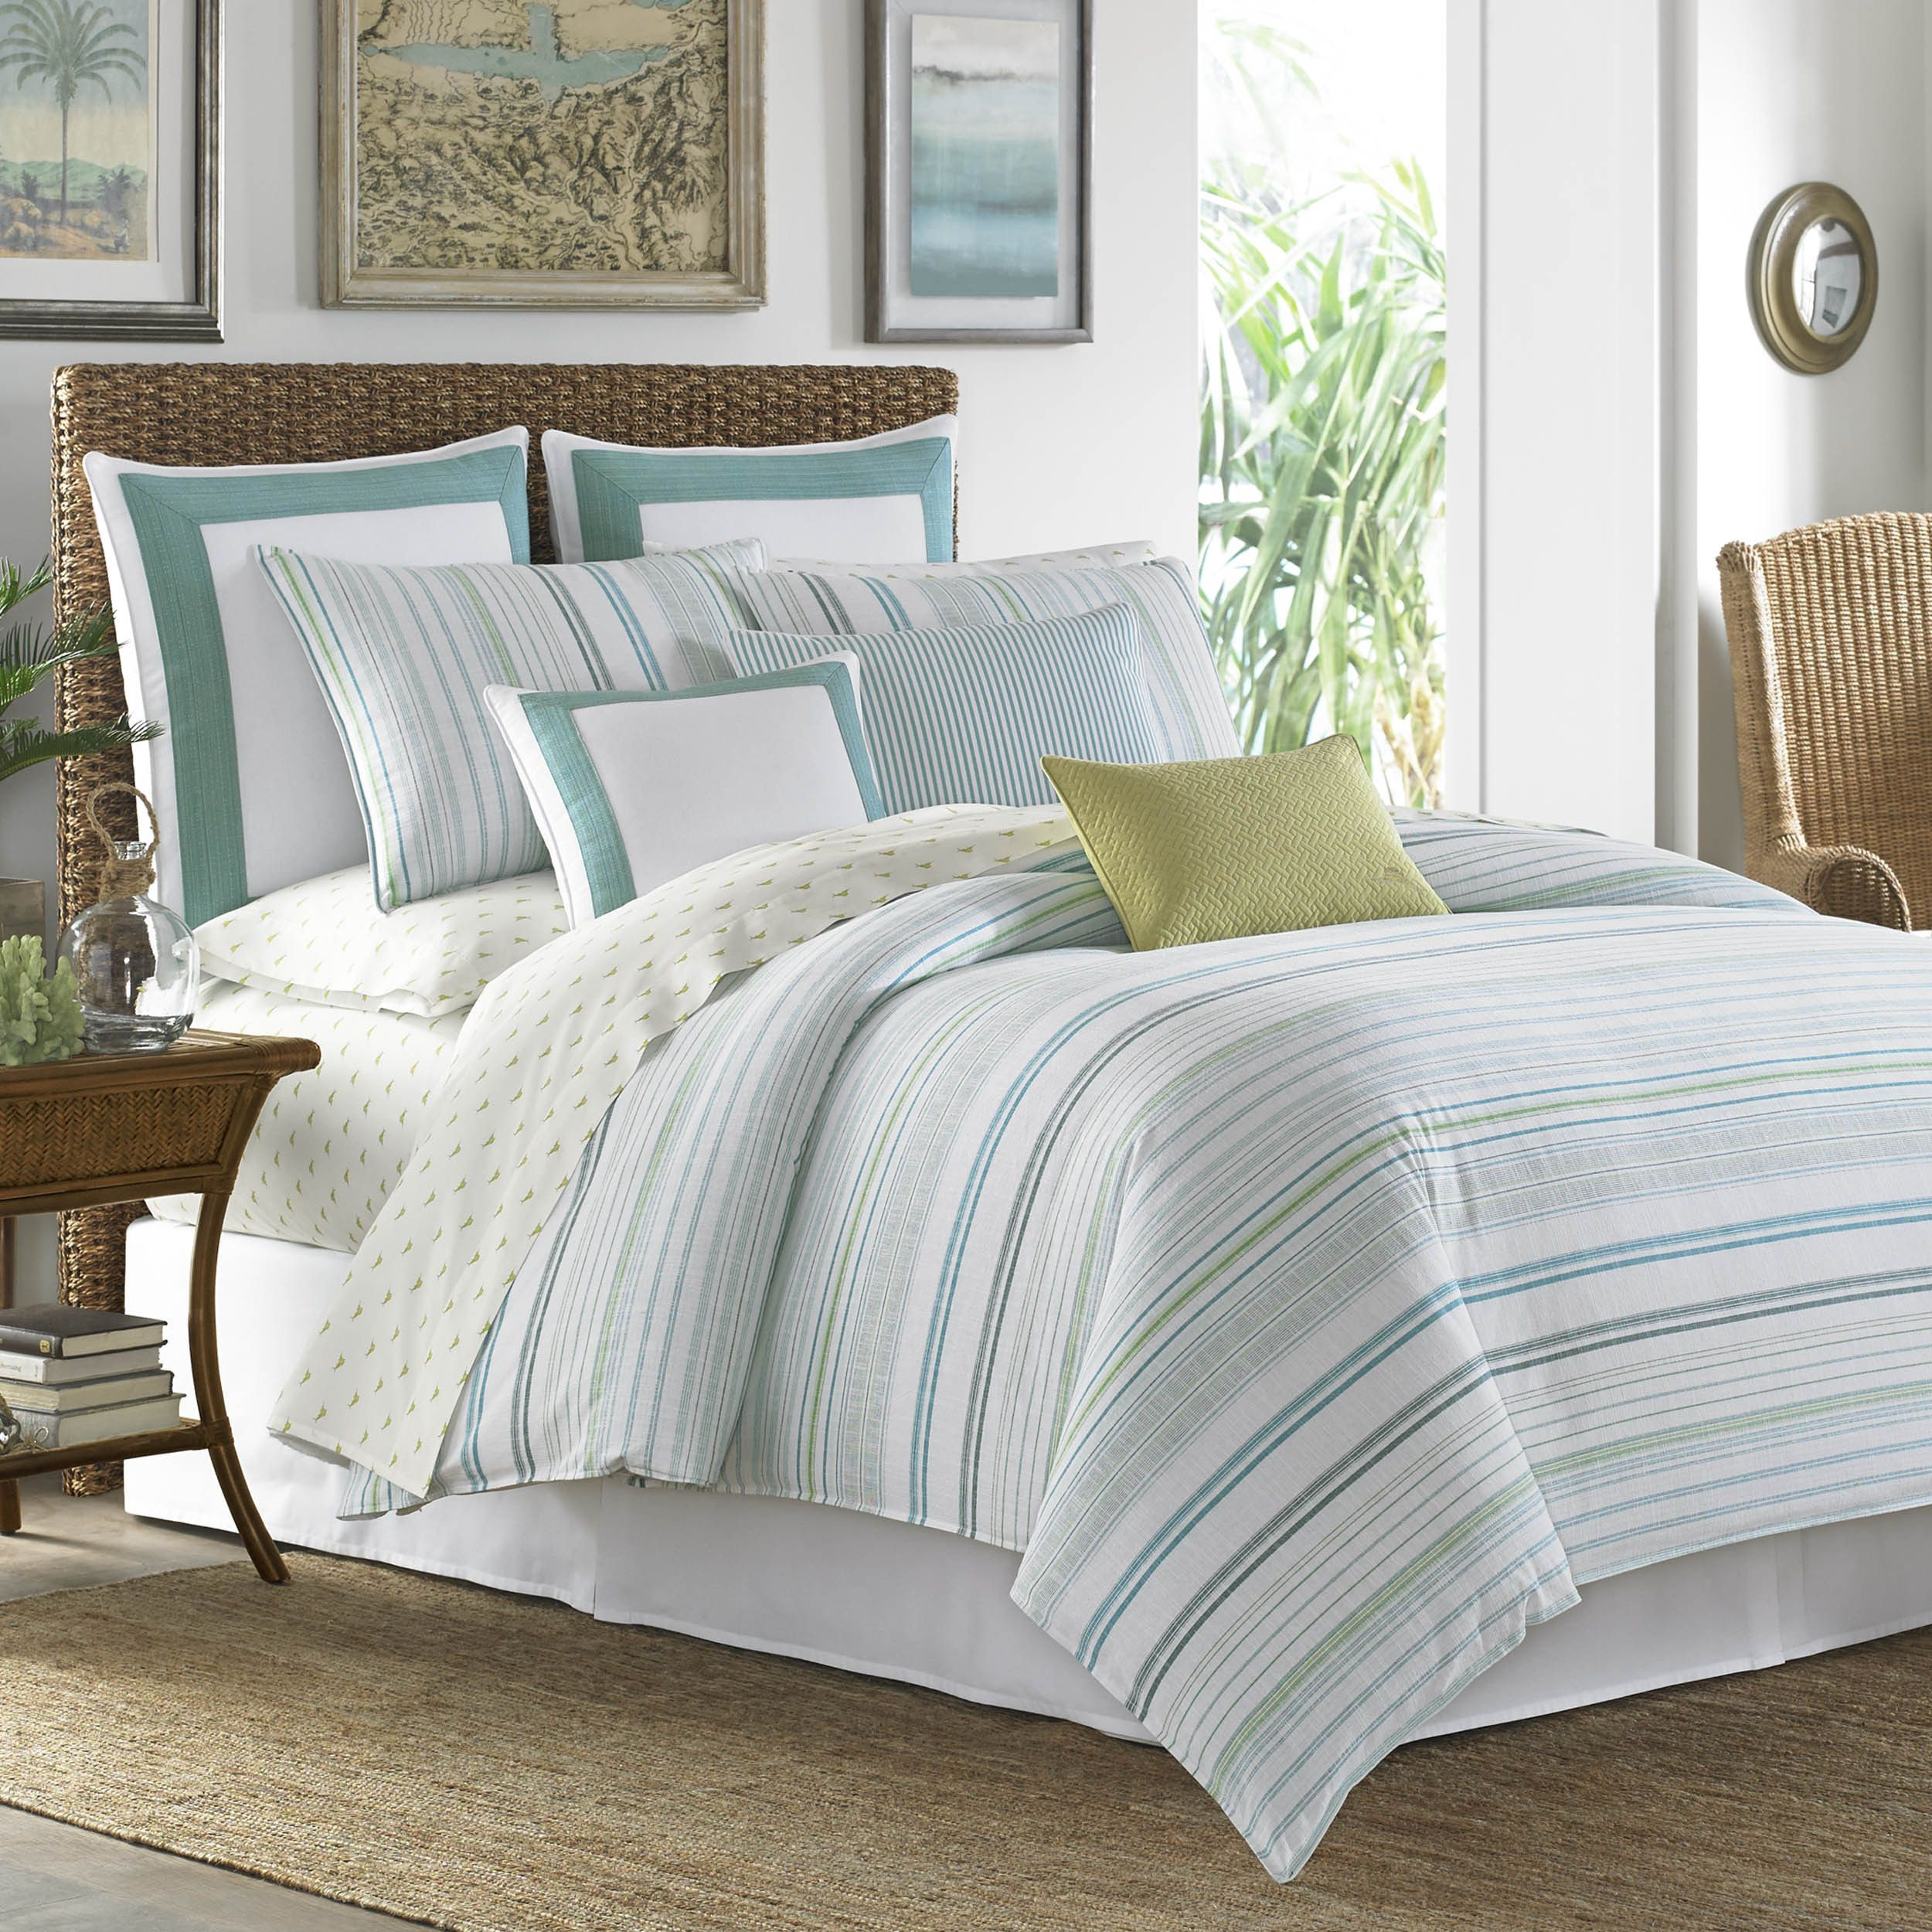 solid king comforter bahama set nassau cotton pin tommy quilt white color